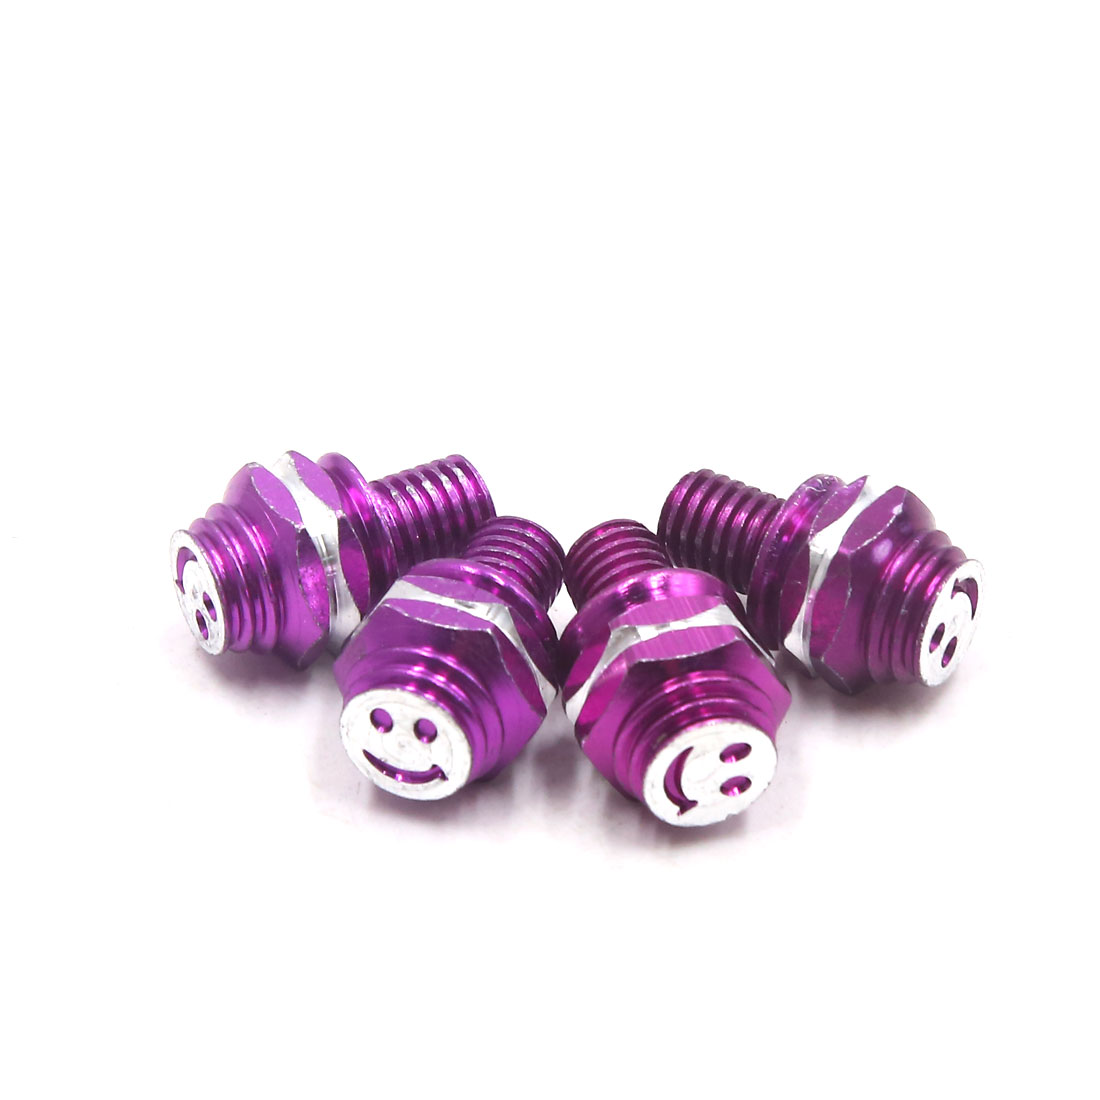 4Pcs M8 x 10mm Smiling Face Pattern Motorcycle Hex Screws Bolts Fasteners Purple